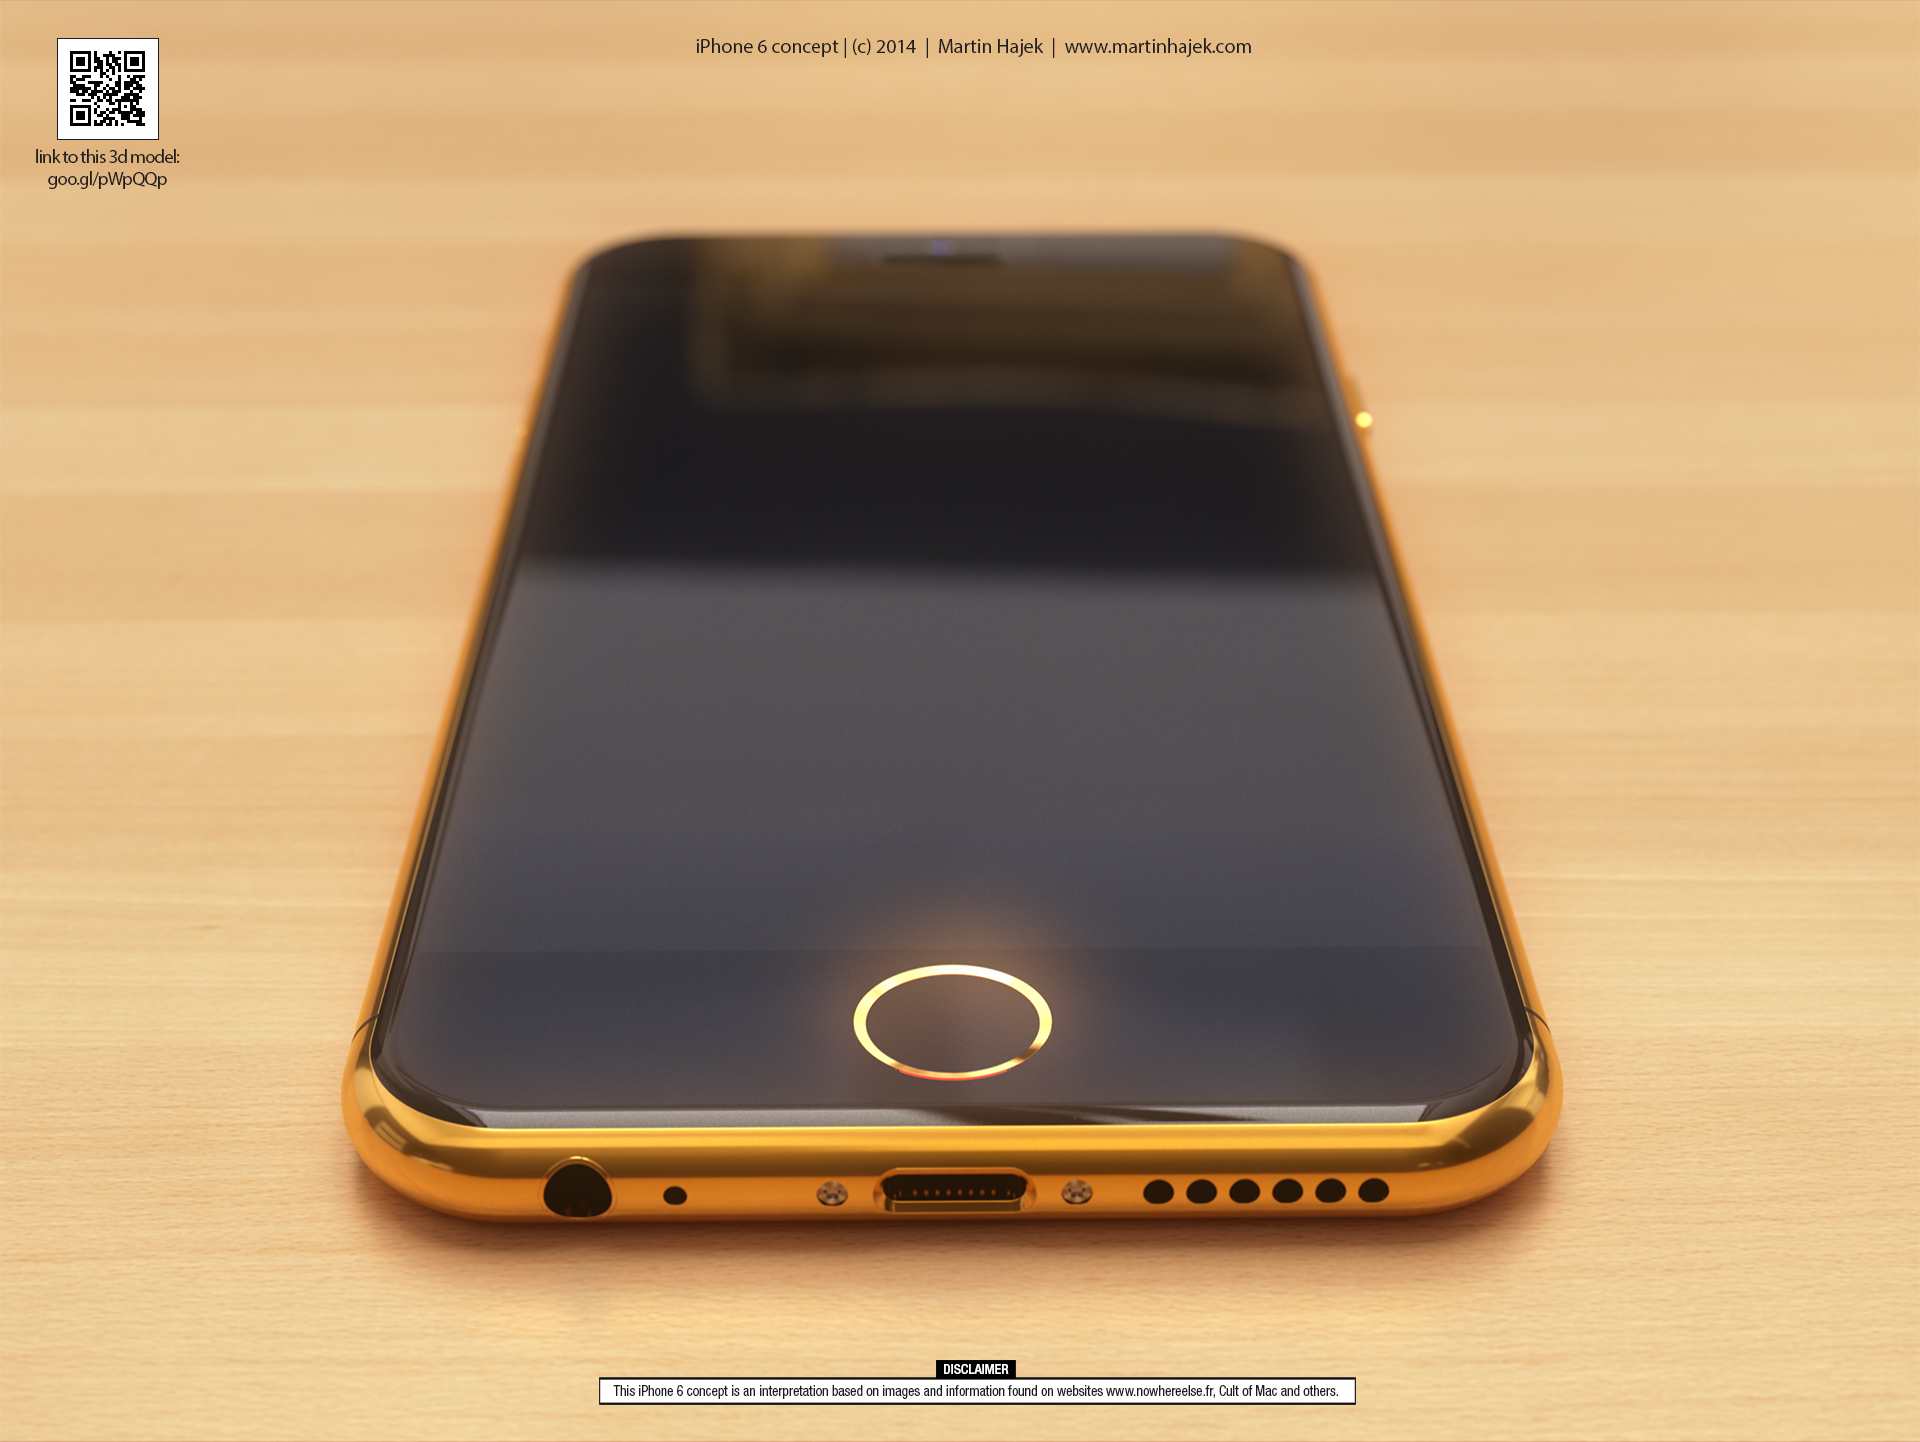 Luxury-iPhone-6-concept-design (4)